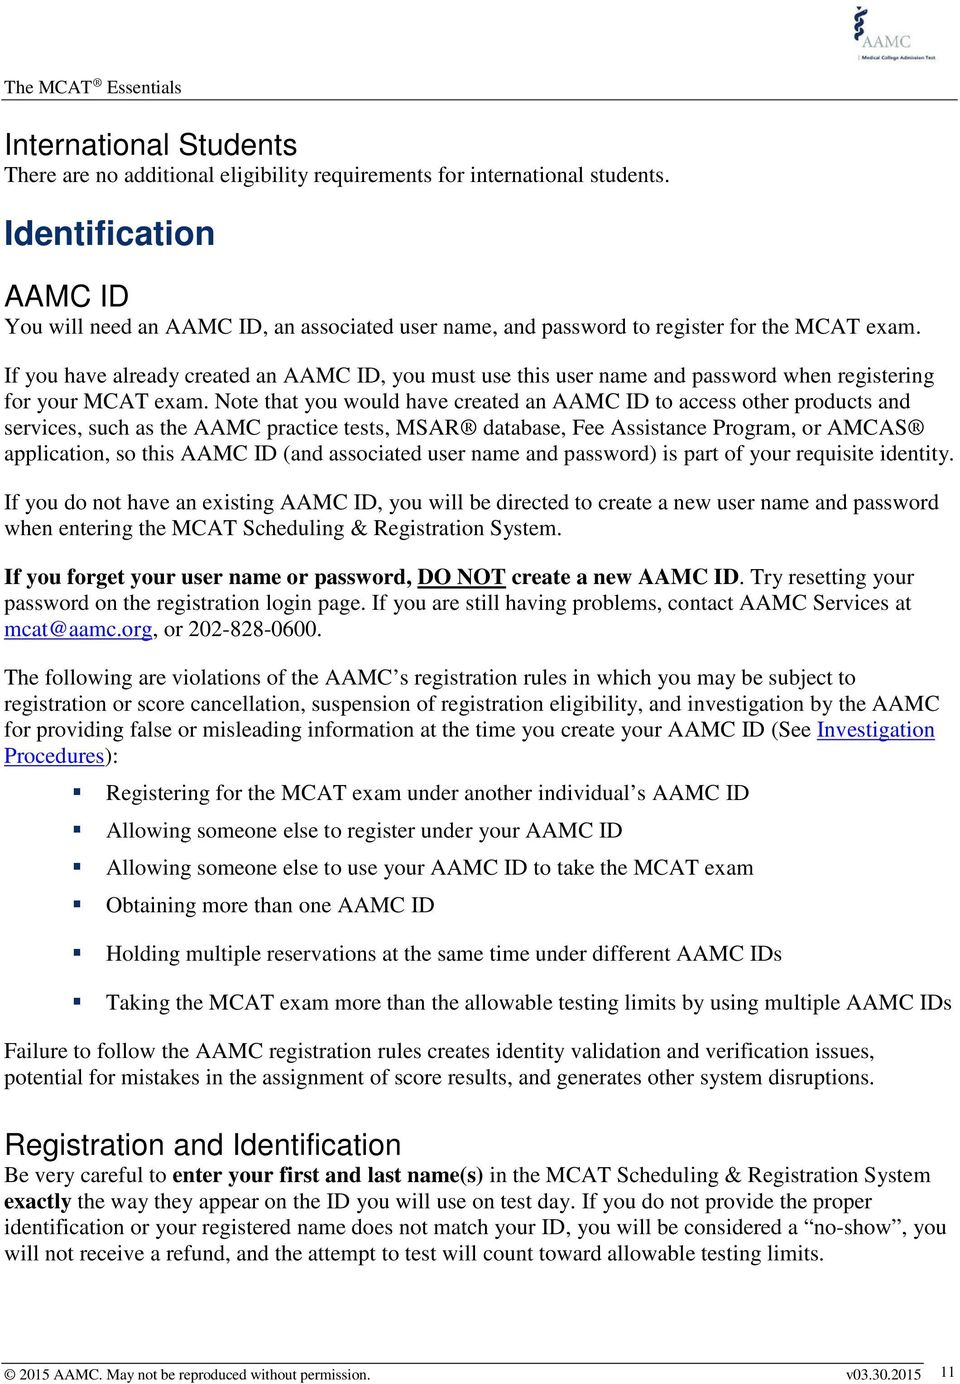 The MCAT Essentials for Testing Year PDF